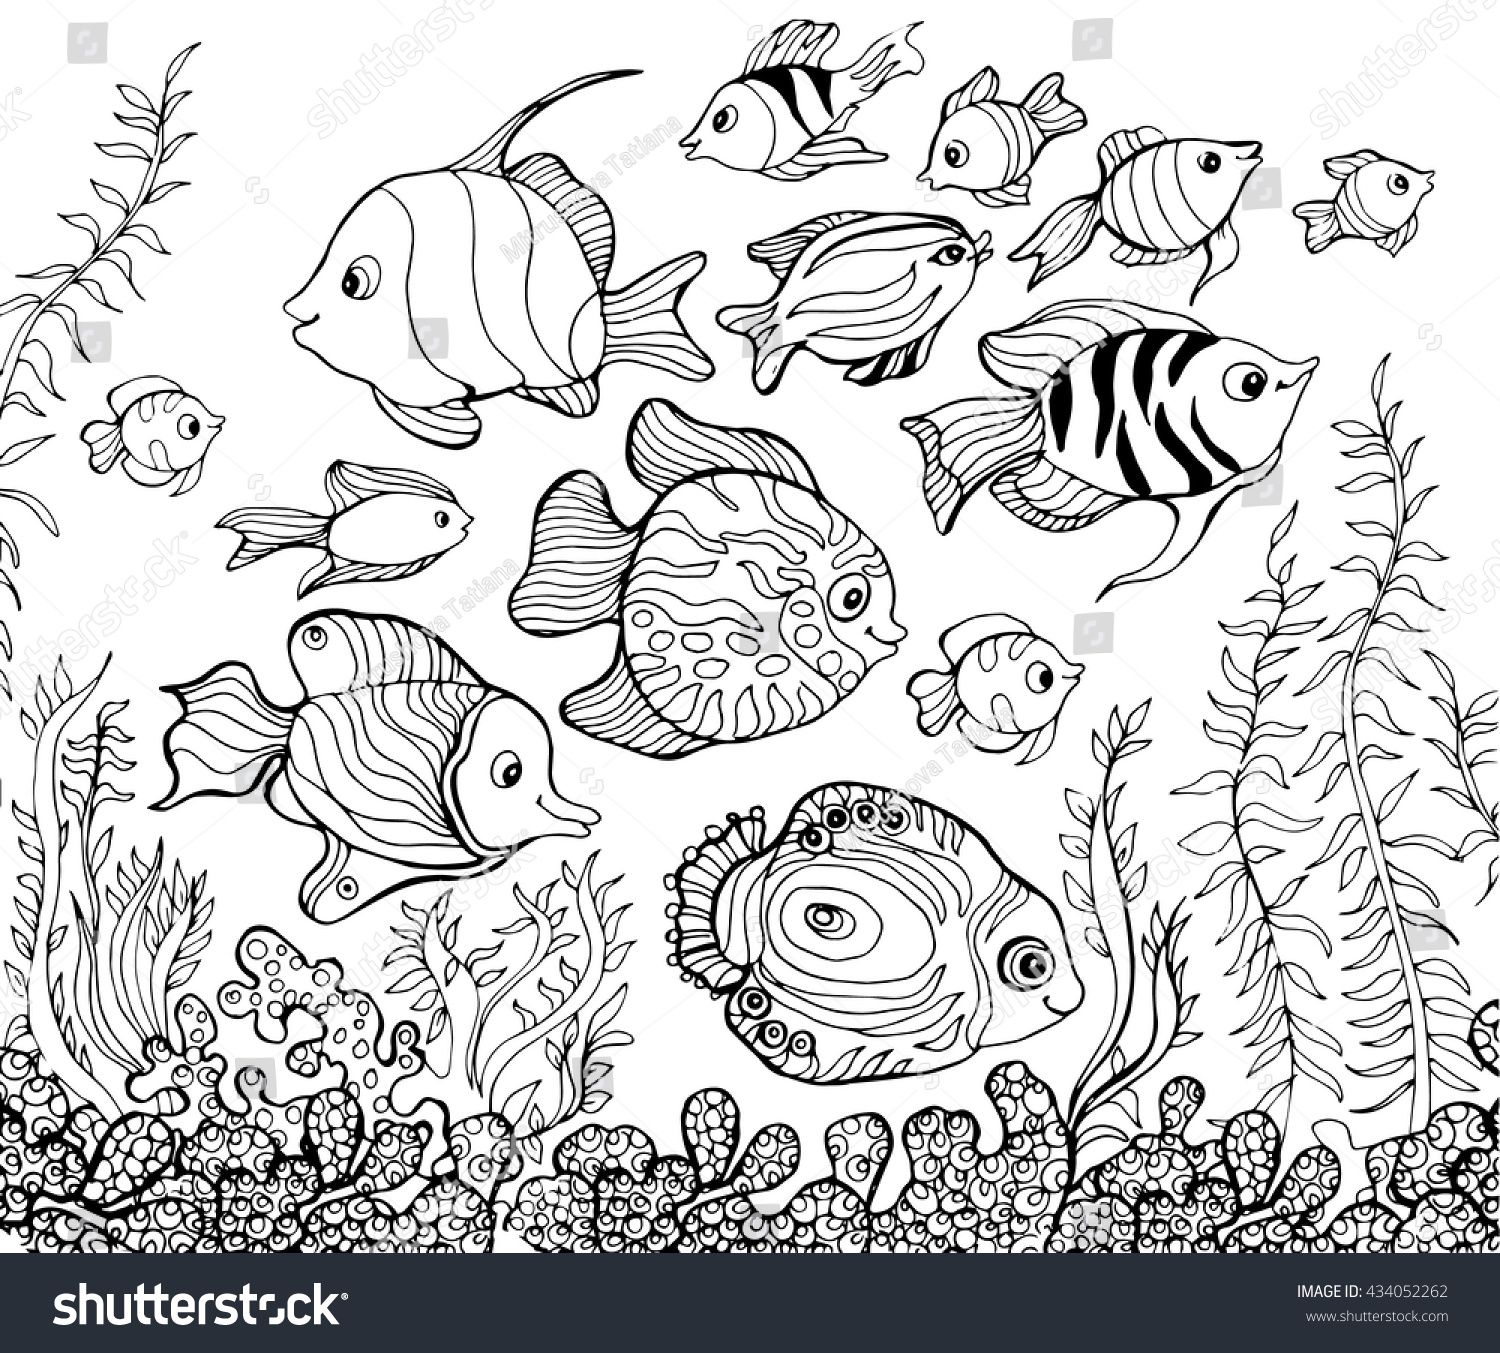 outline drawing underwaterfishcoloring pages for kids - Underwater Coloring Pages